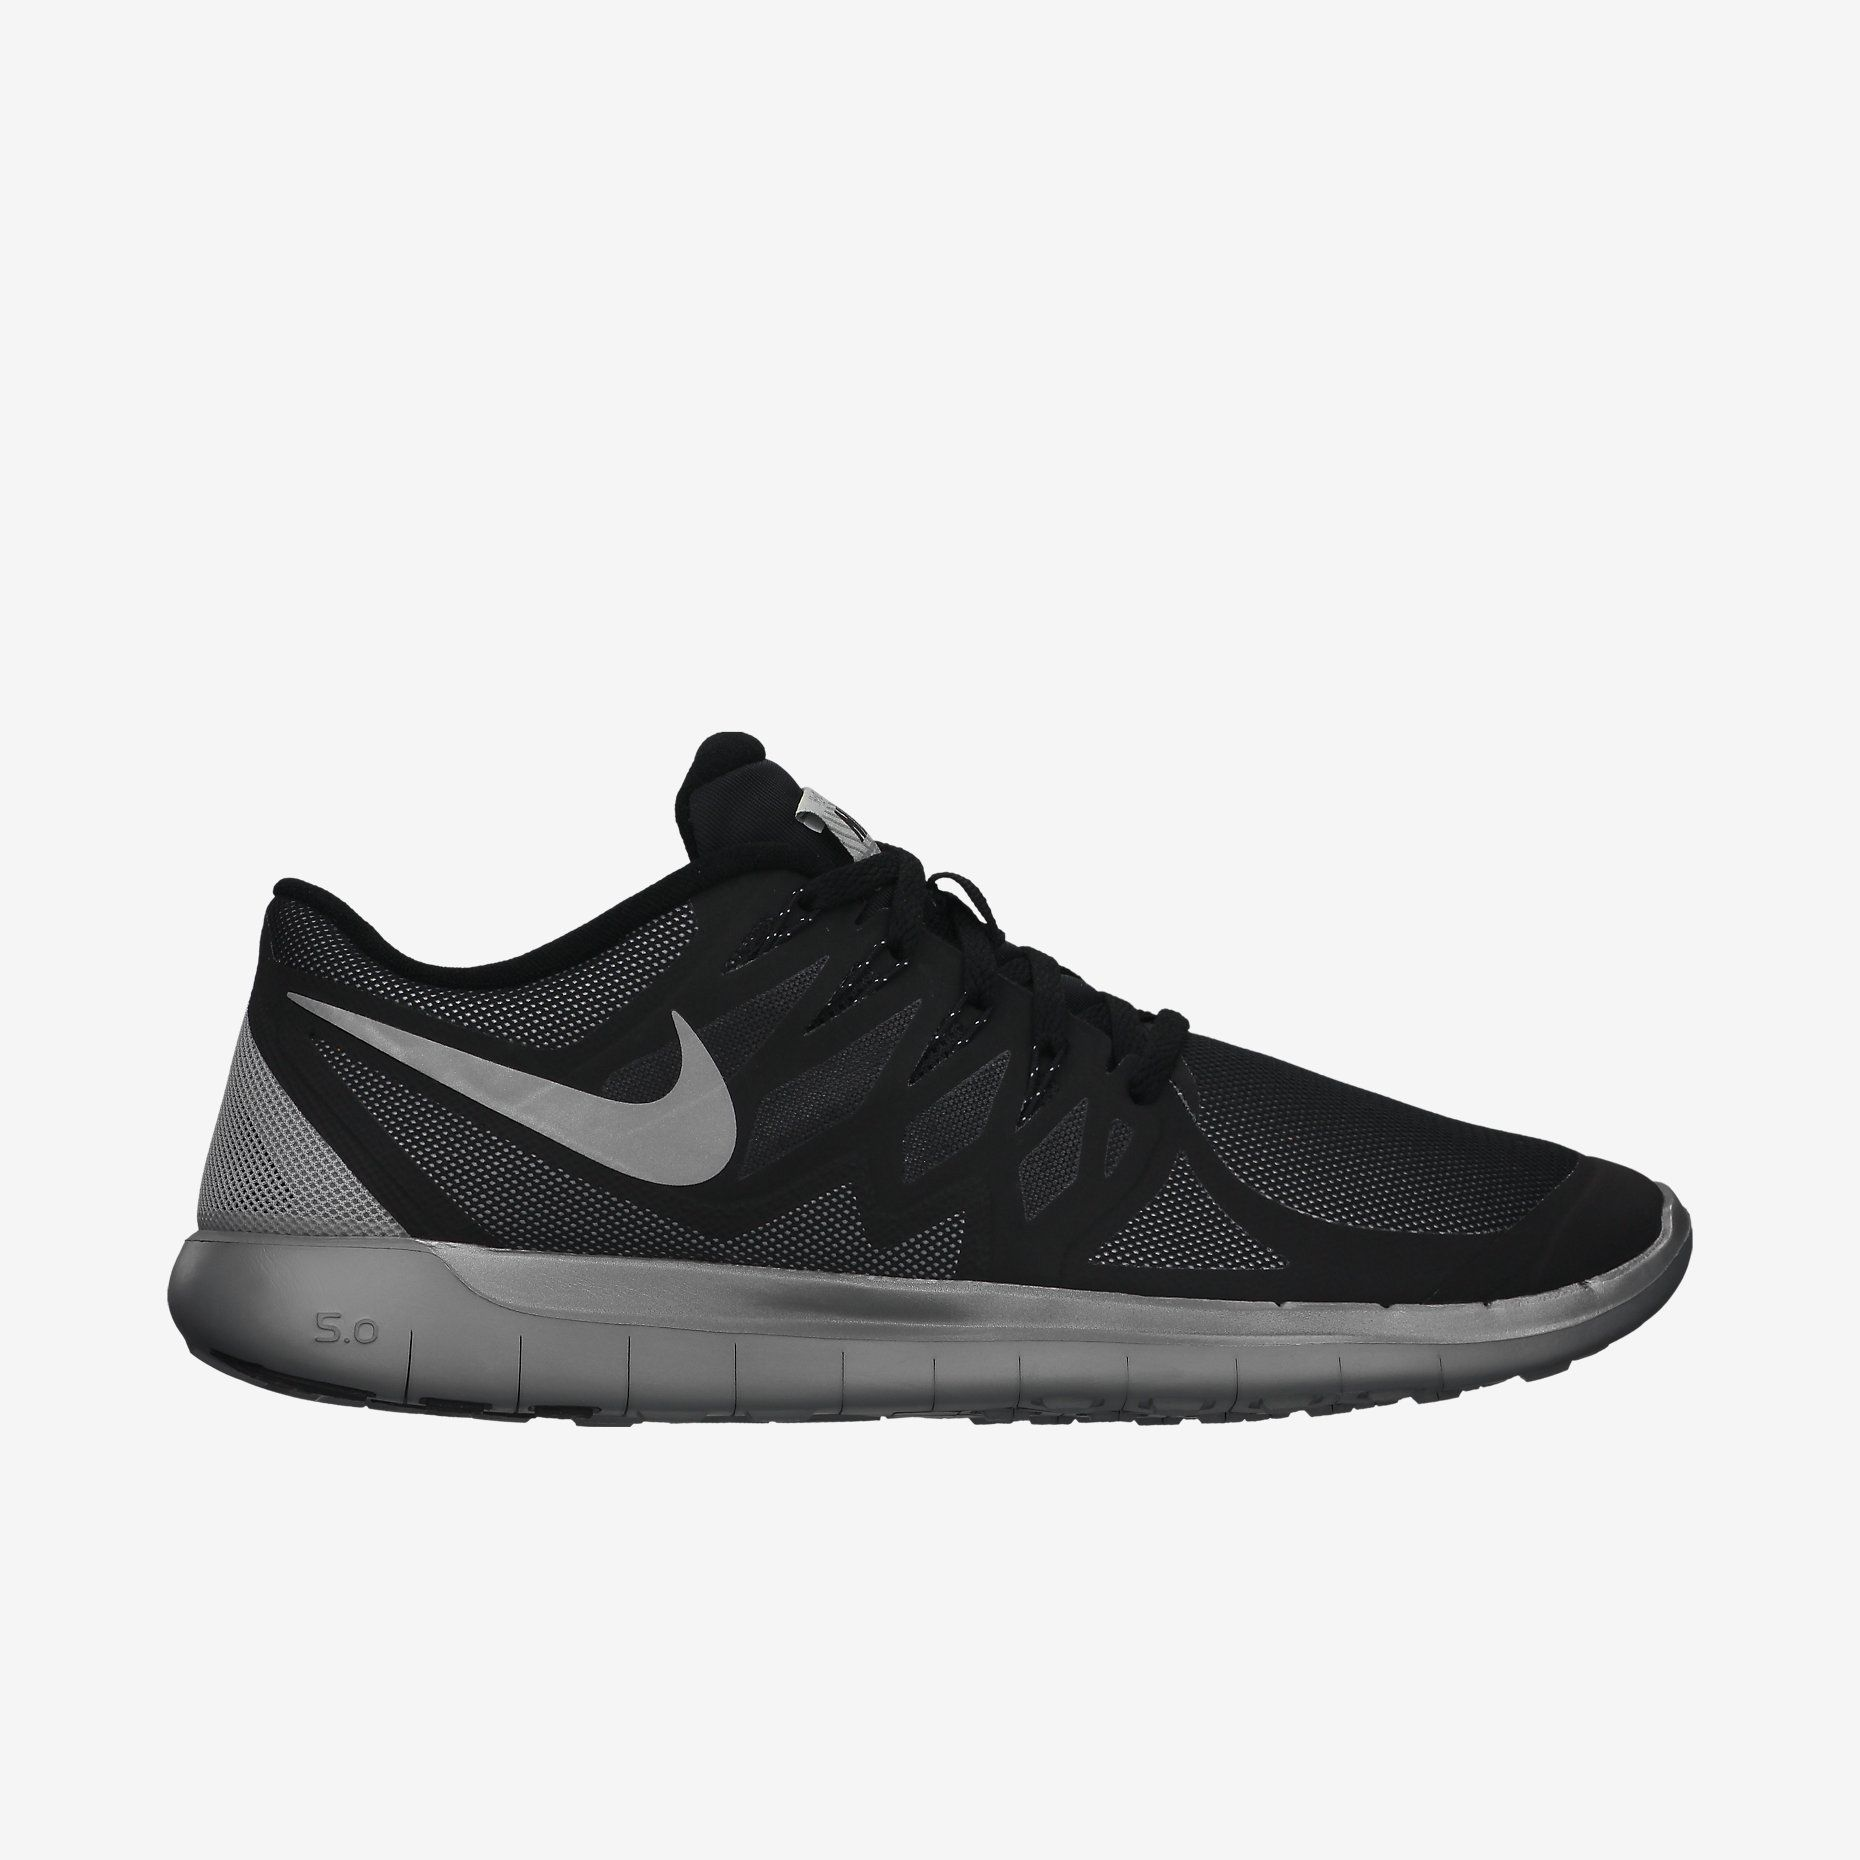 f1f18a88b632 Nike Free 5.0 Flash Men s Running Shoe. Nike Store UK